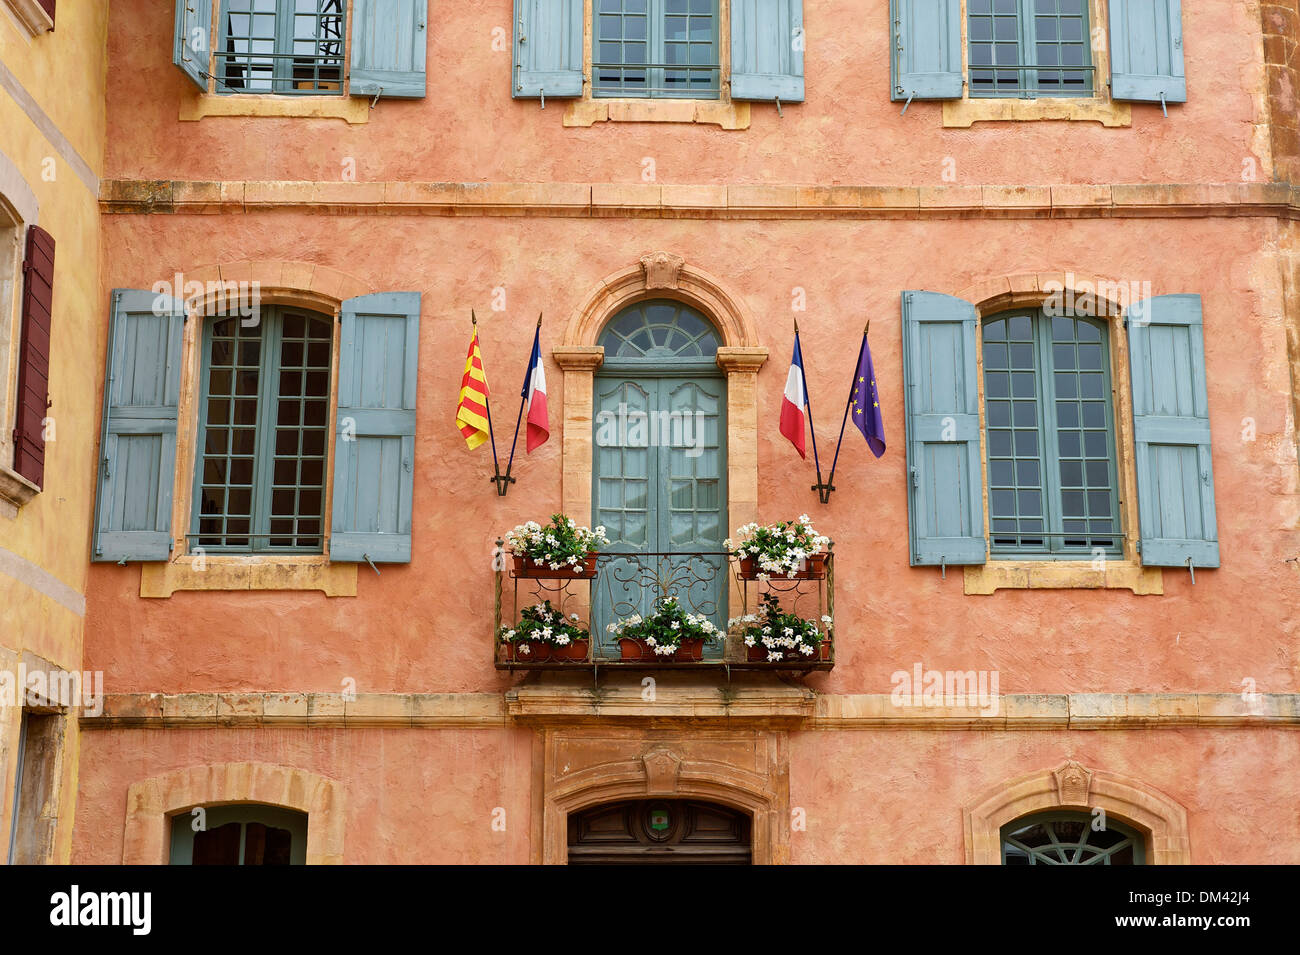 france europe provence south of france house facade building facade stock photo royalty free. Black Bedroom Furniture Sets. Home Design Ideas